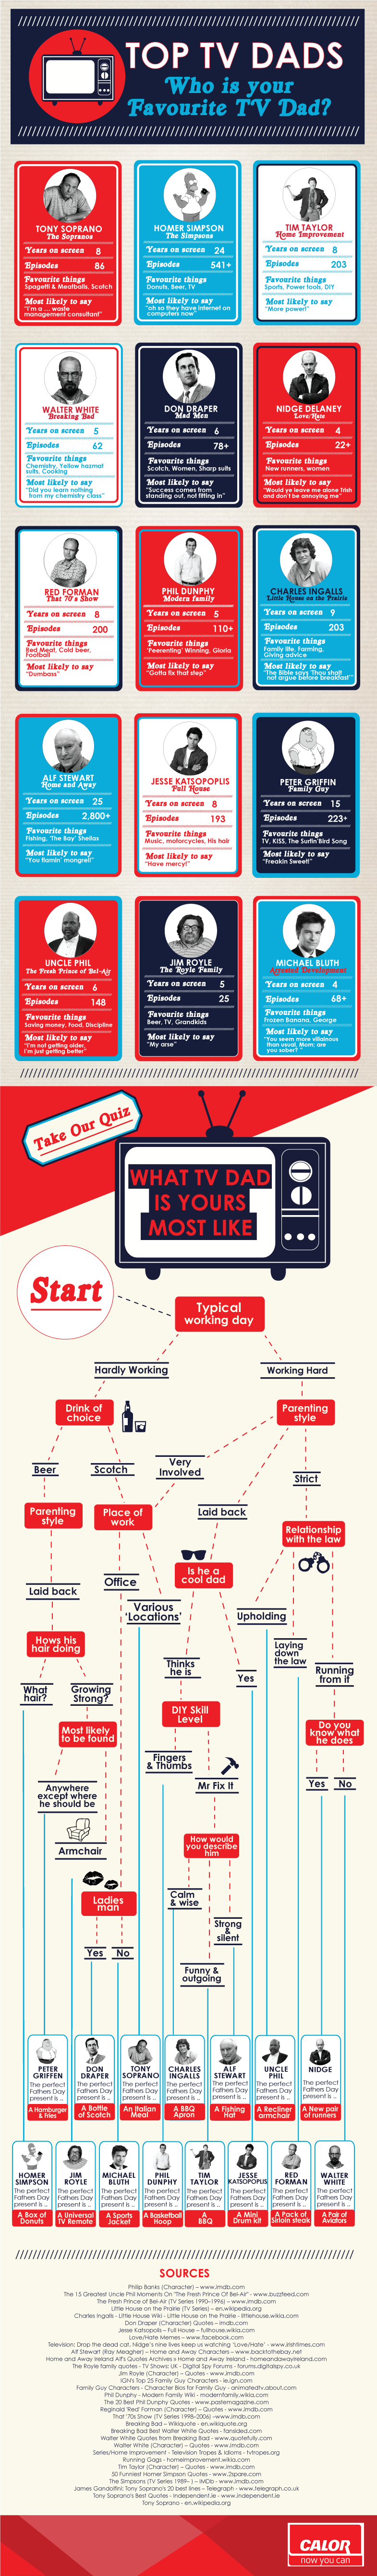 Who is Your Favourite TV Dad?